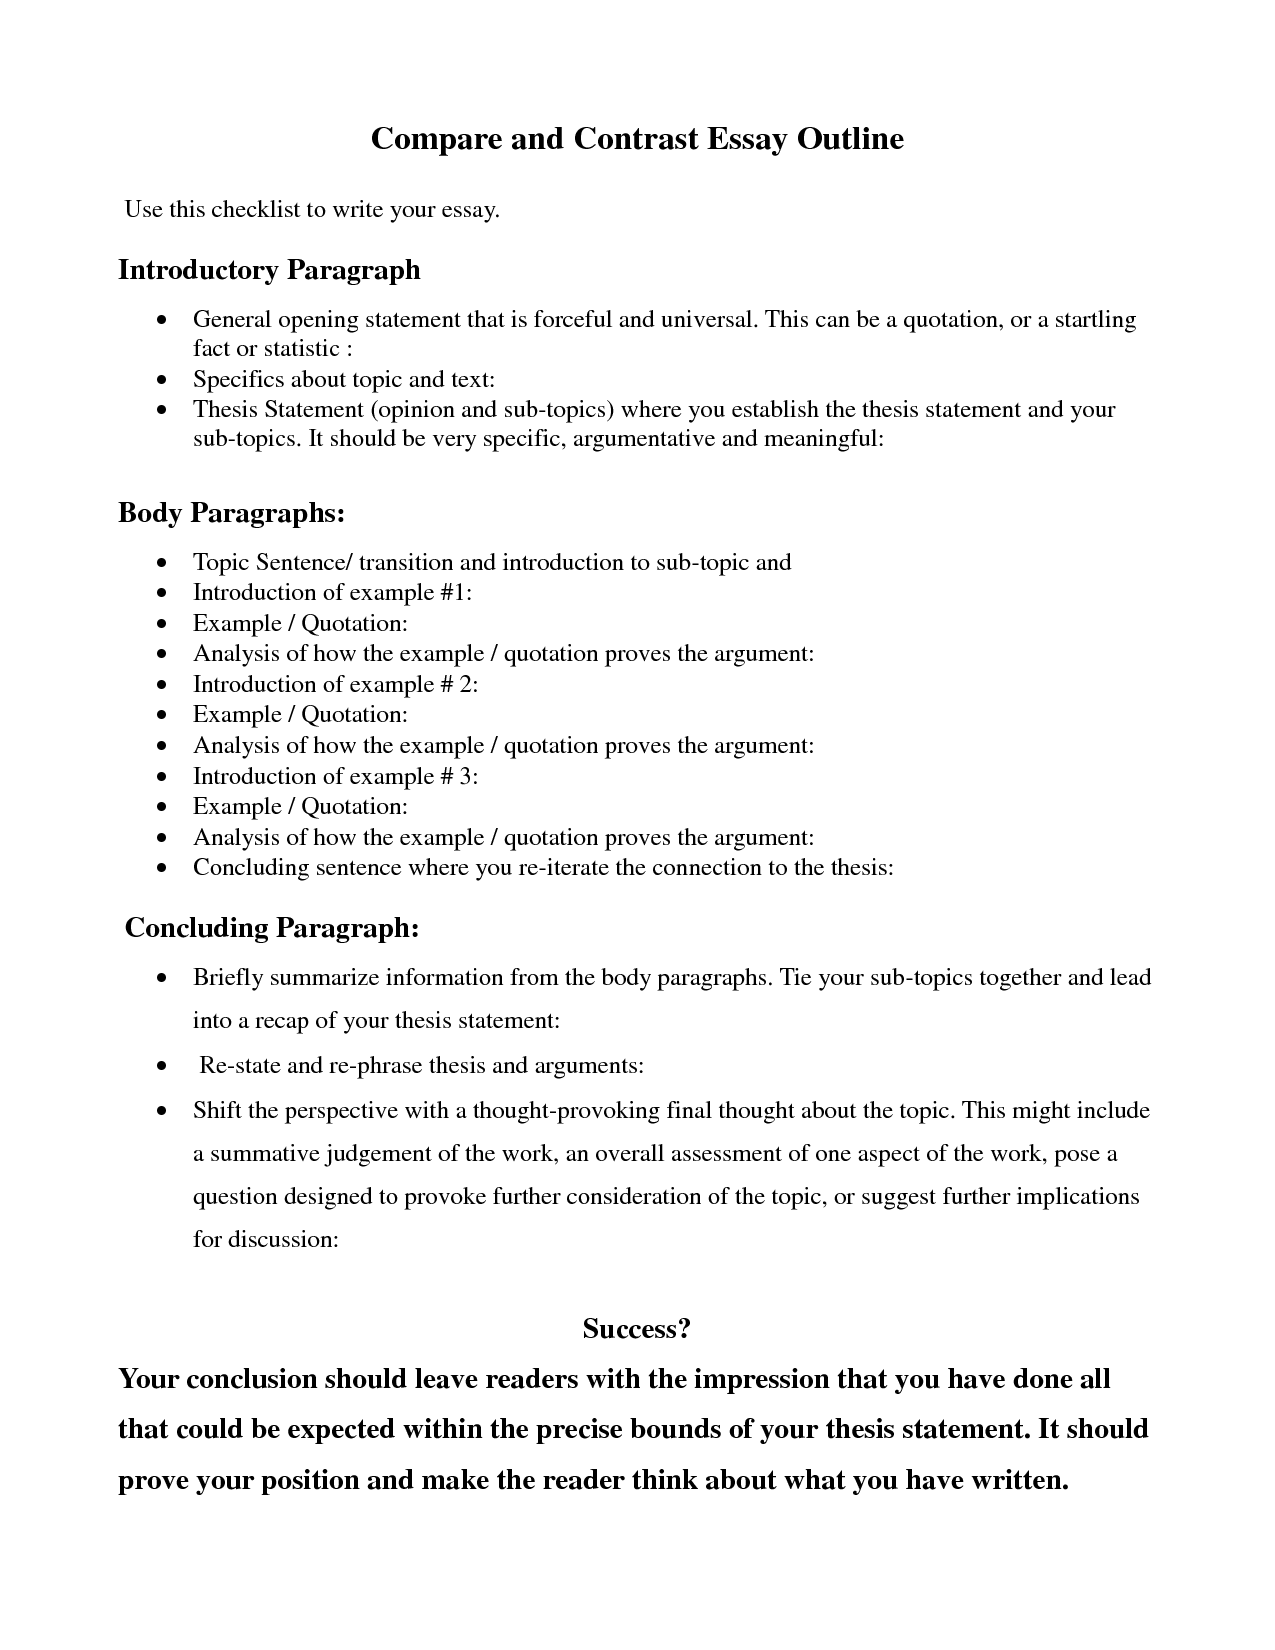 Simple Essays For High School Students Comparecontrast Essay Outline  Google Search How To Write A Proposal Essay Outline also Thesis Statement Essay Example Comparecontrast Essay Outline  Google Search  Education  Thesis  Essays On Different Topics In English